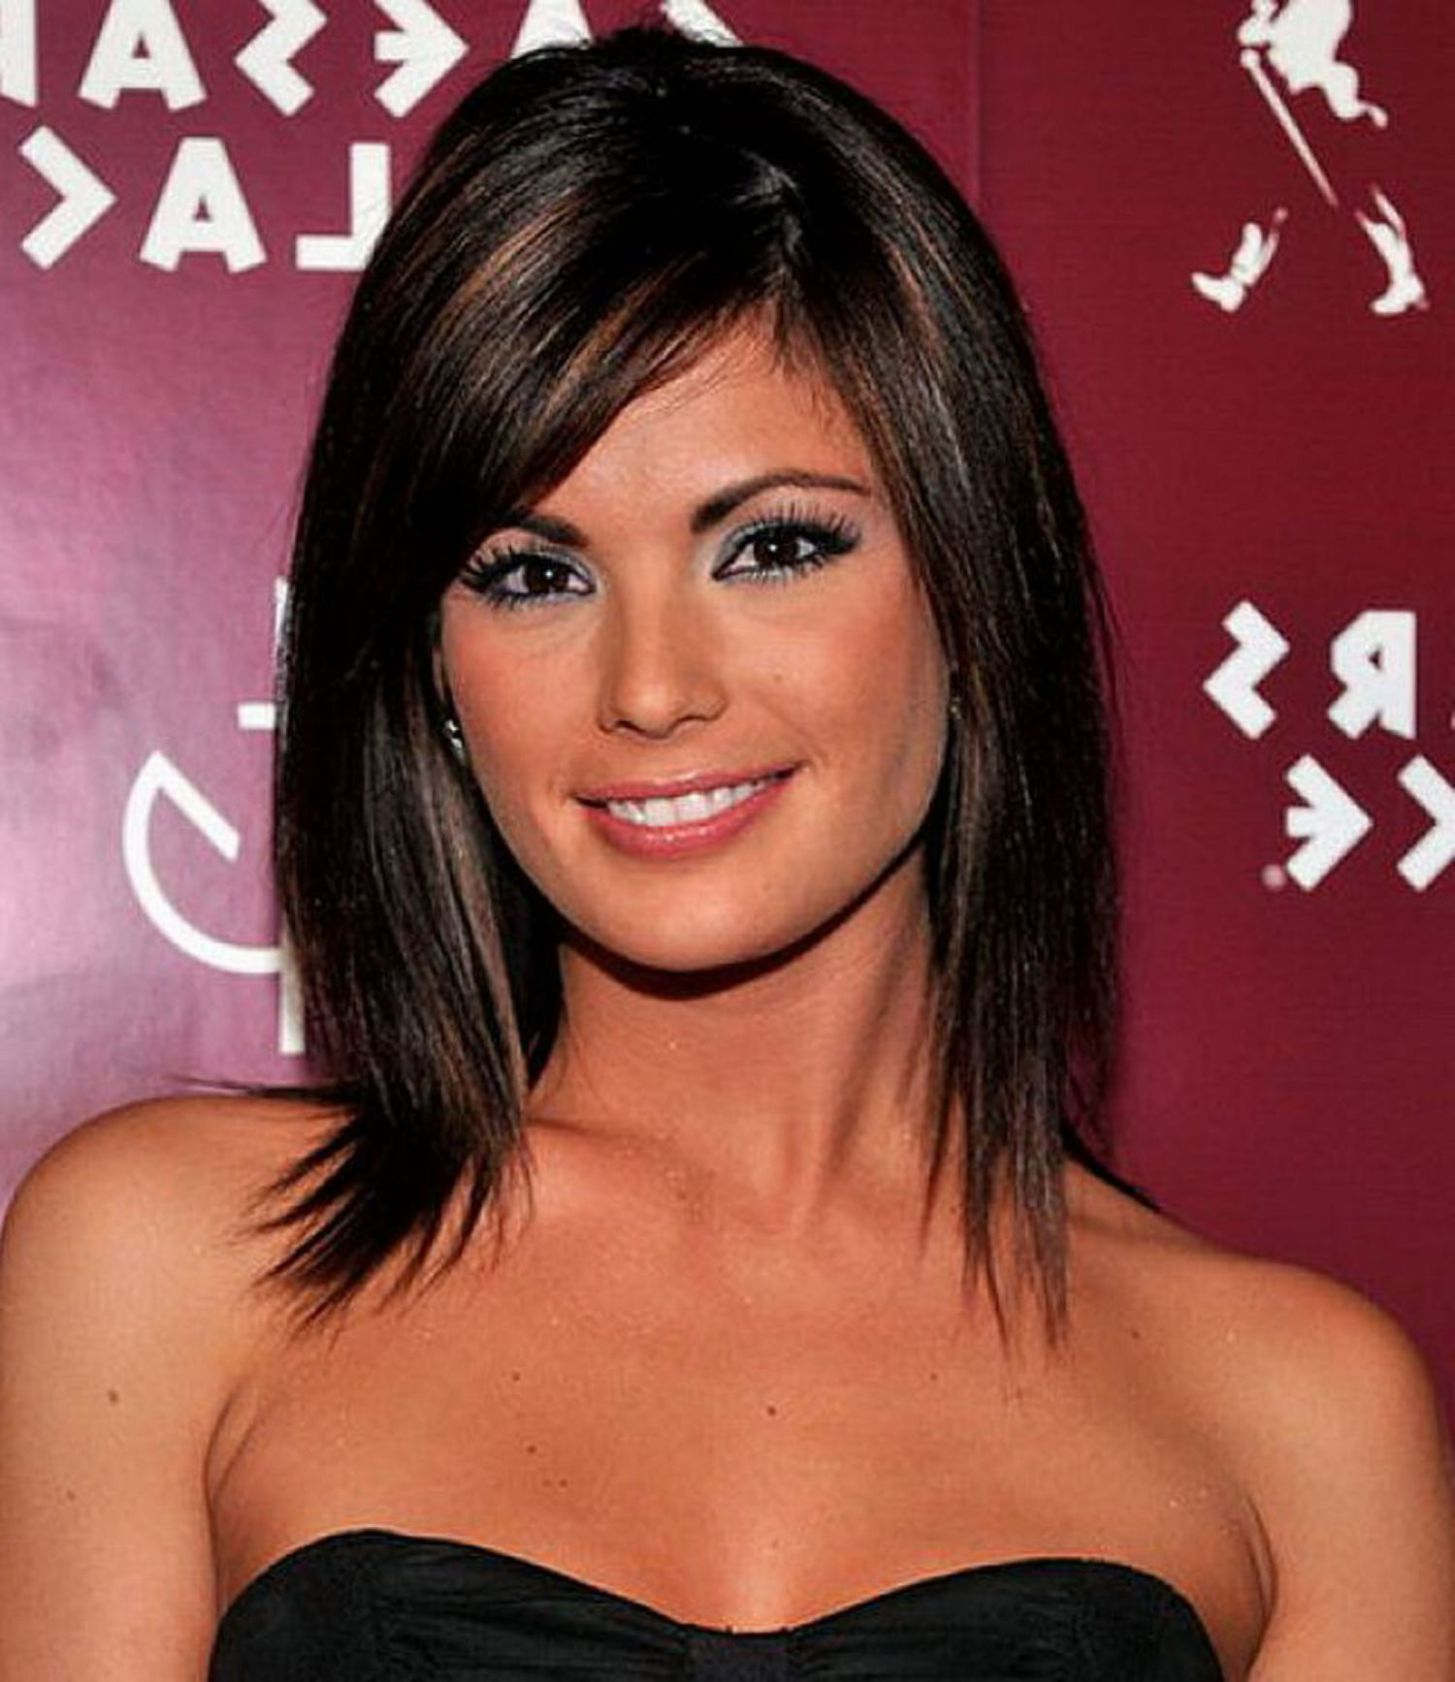 Medium Straight Hairstyles With Side Bangs Side Bangs Are Super Popular Right Now Haircuts For Medium Hair Medium Hair Styles For Women Medium Hair Styles